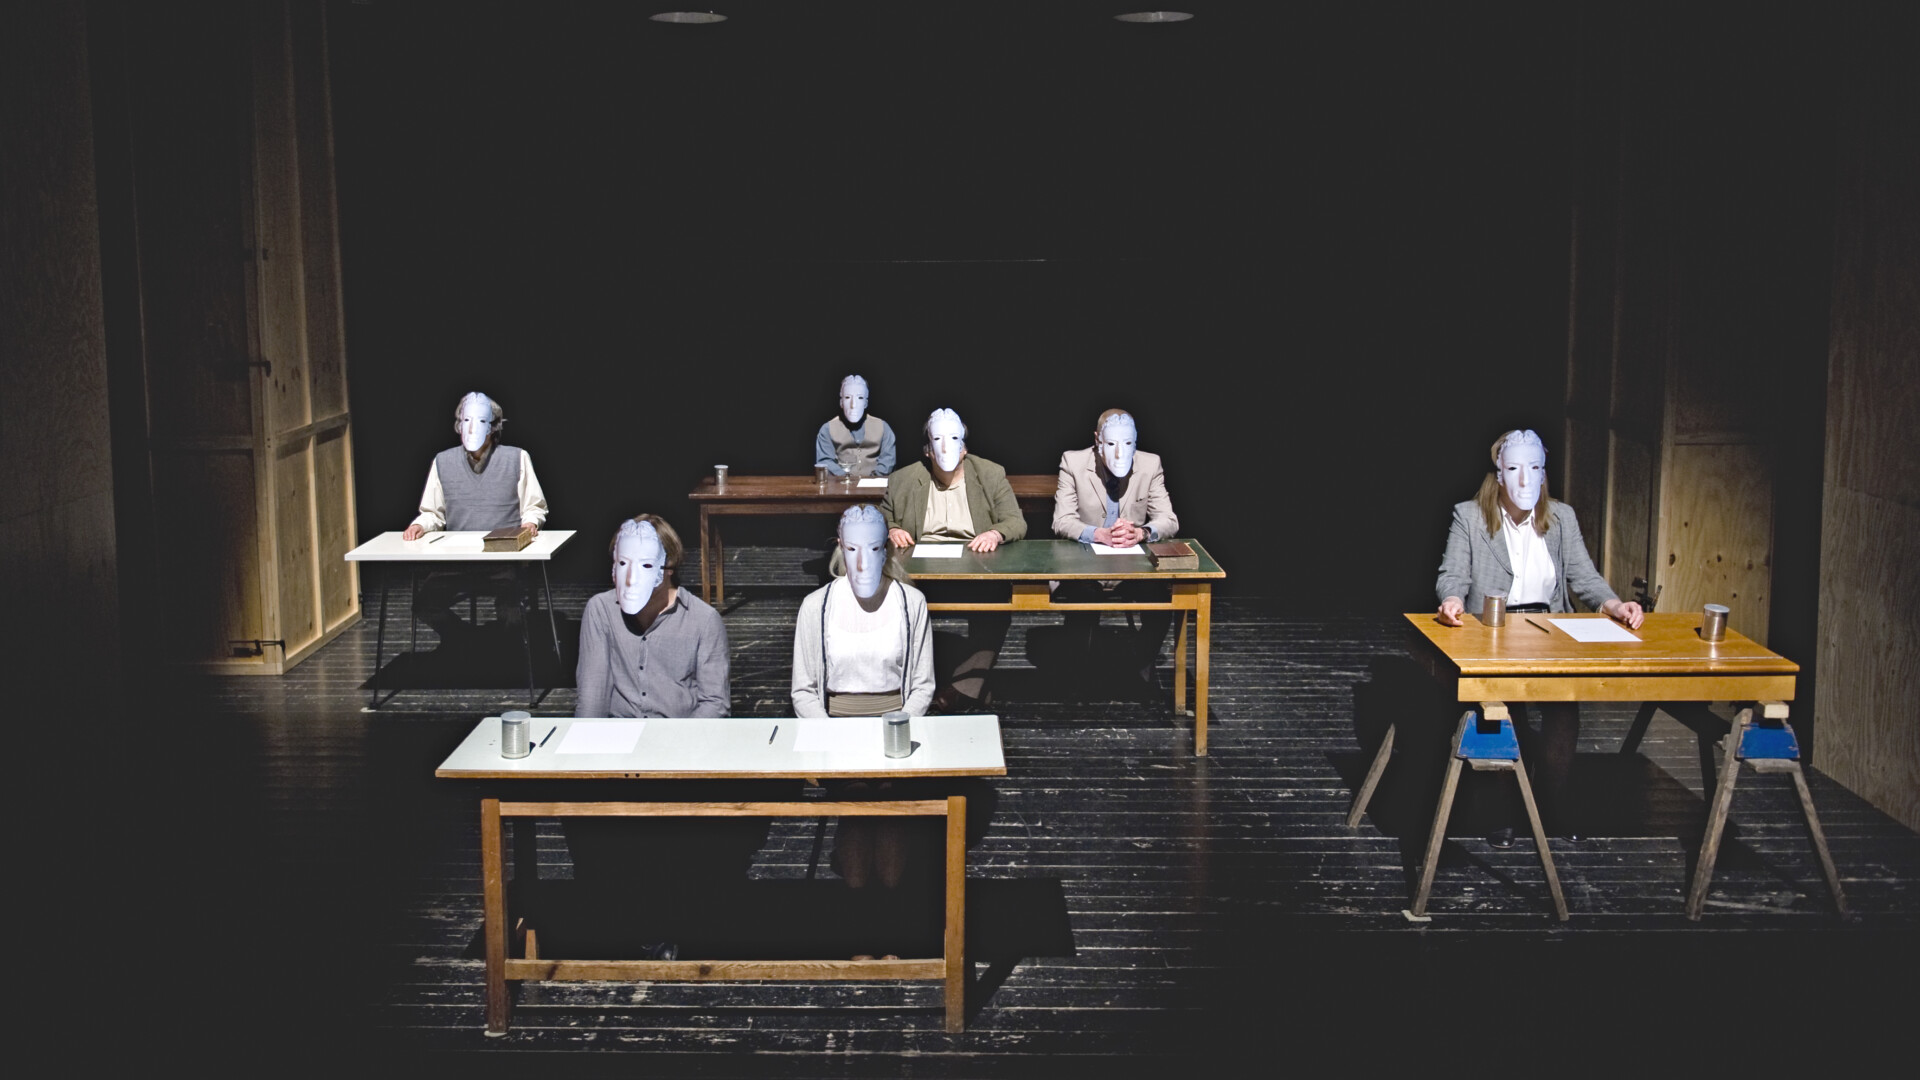 Five tables are on the stage. At every table there is a person sitting wearing modest clothes and a grey mask. At the table in the middle there are two people sitting.